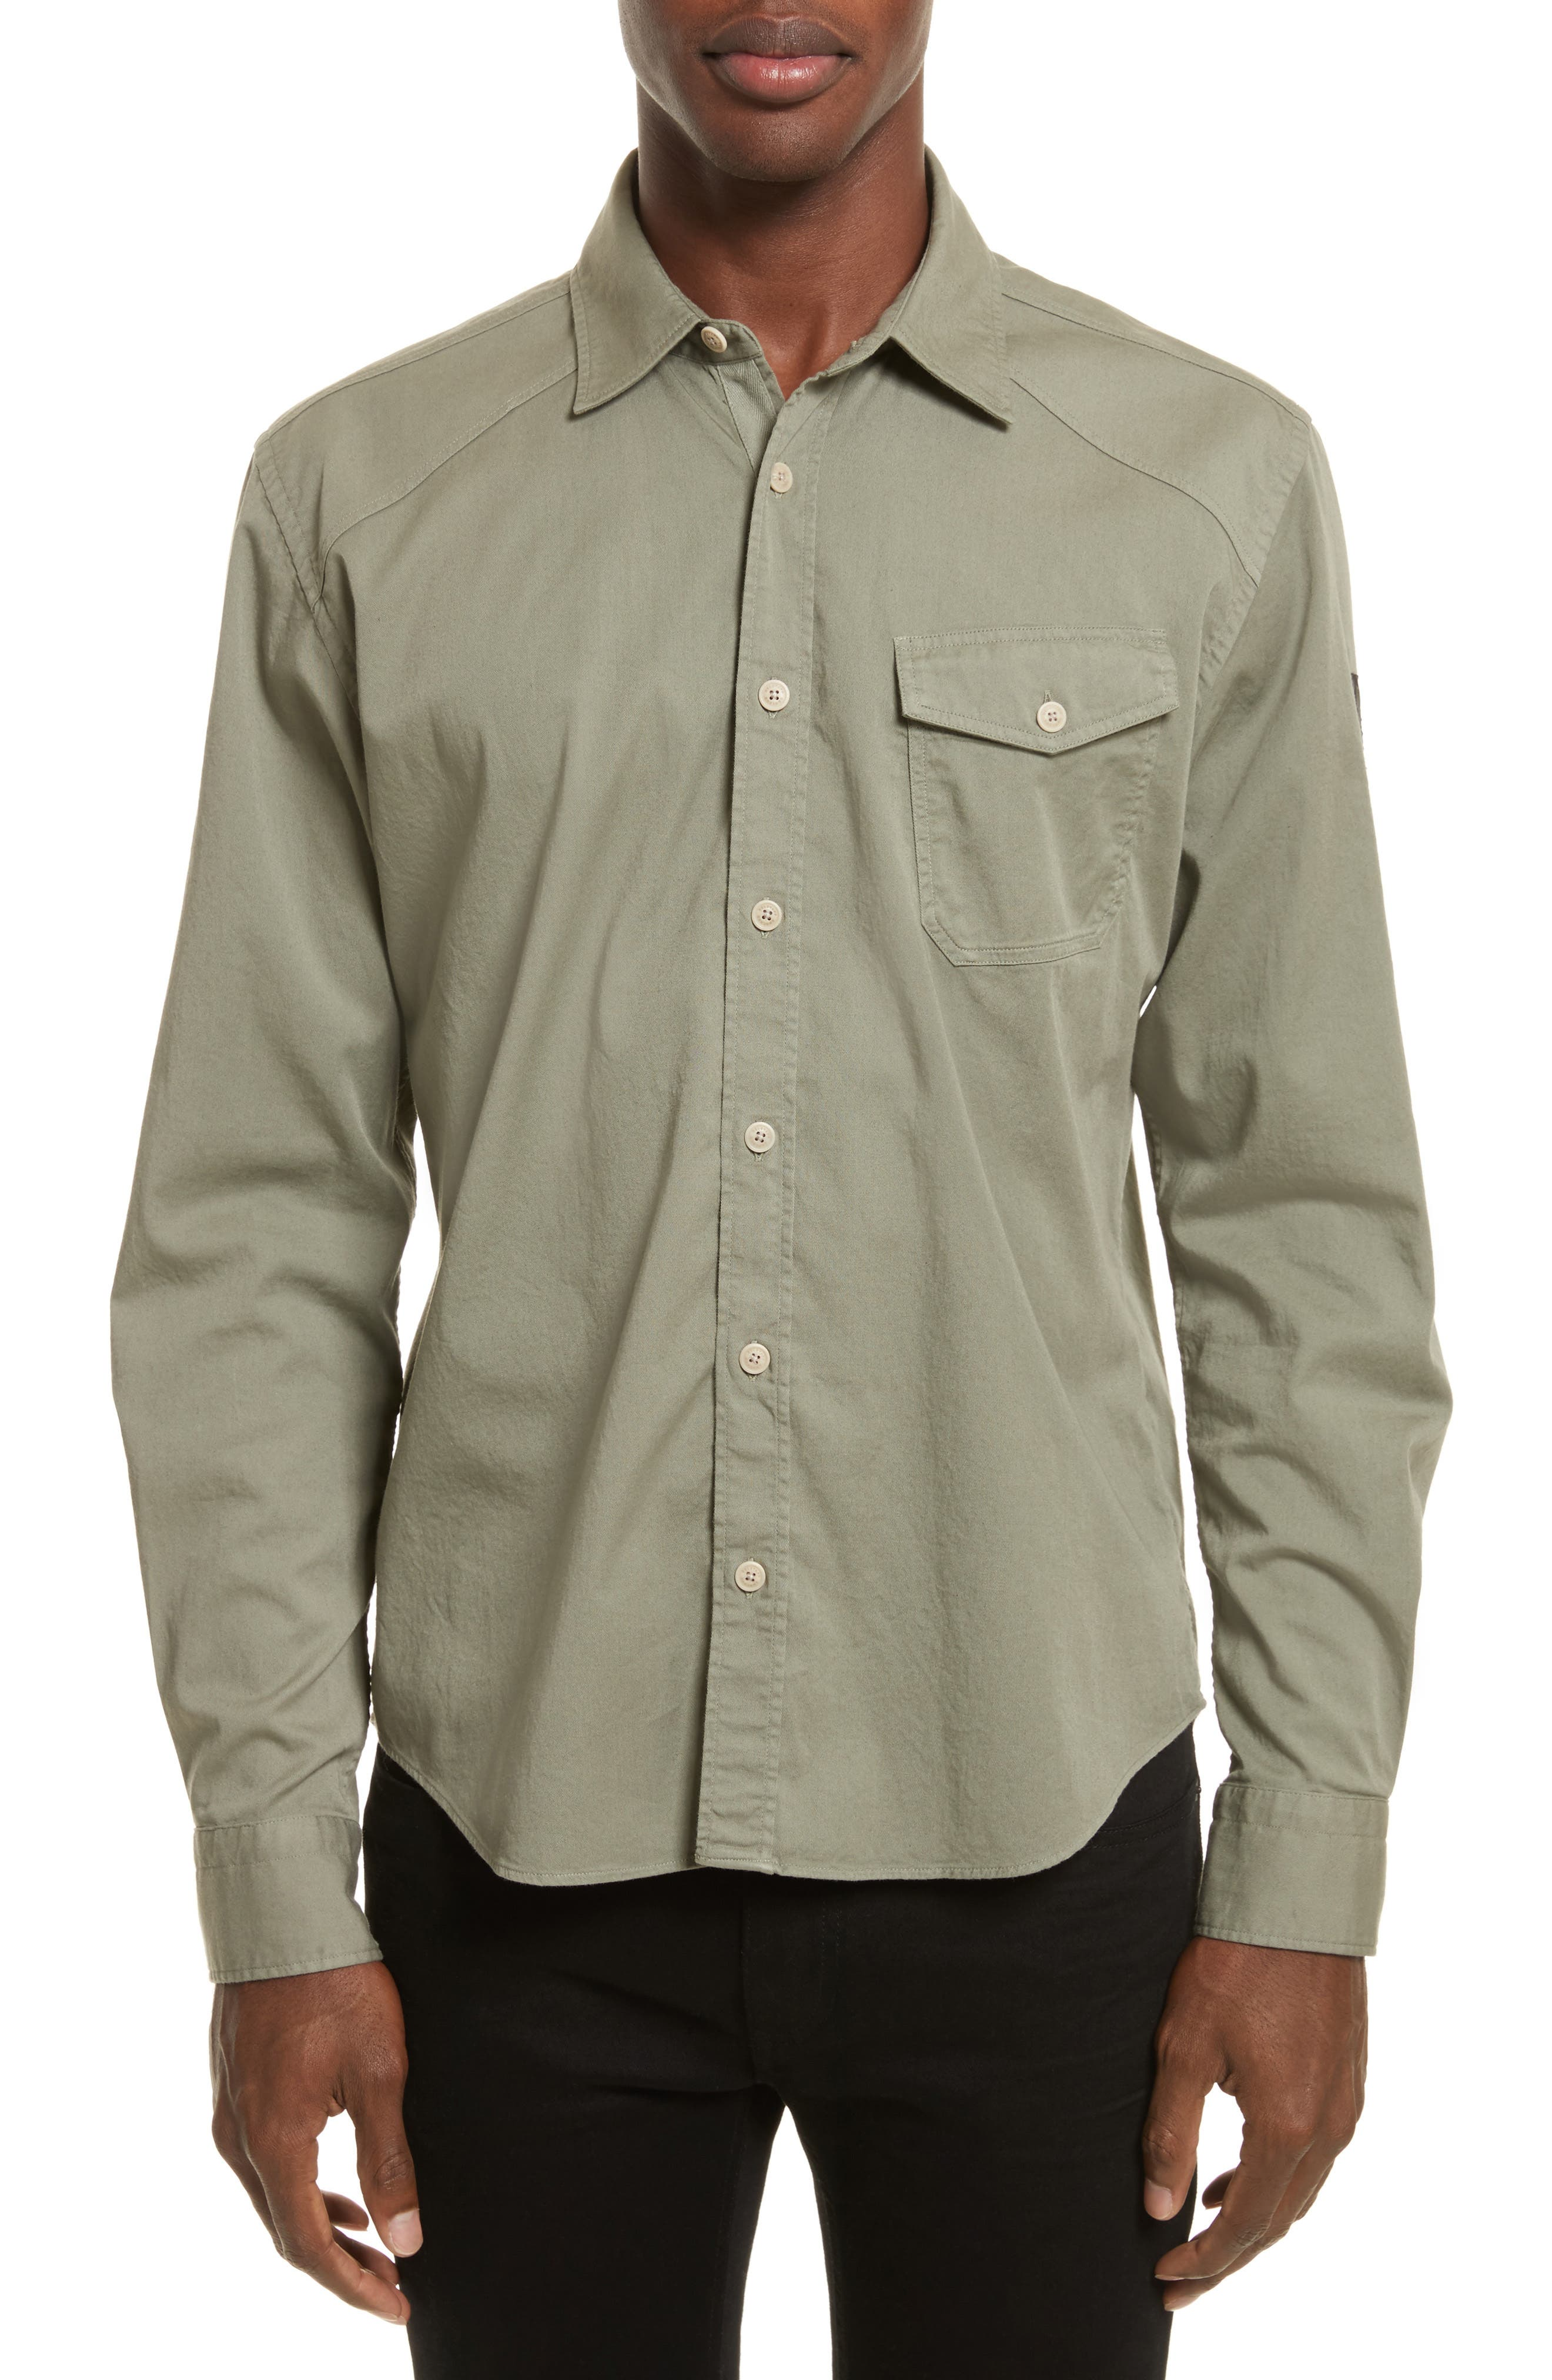 Steadway Extra Slim Fit Sport Shirt,                         Main,                         color, 033